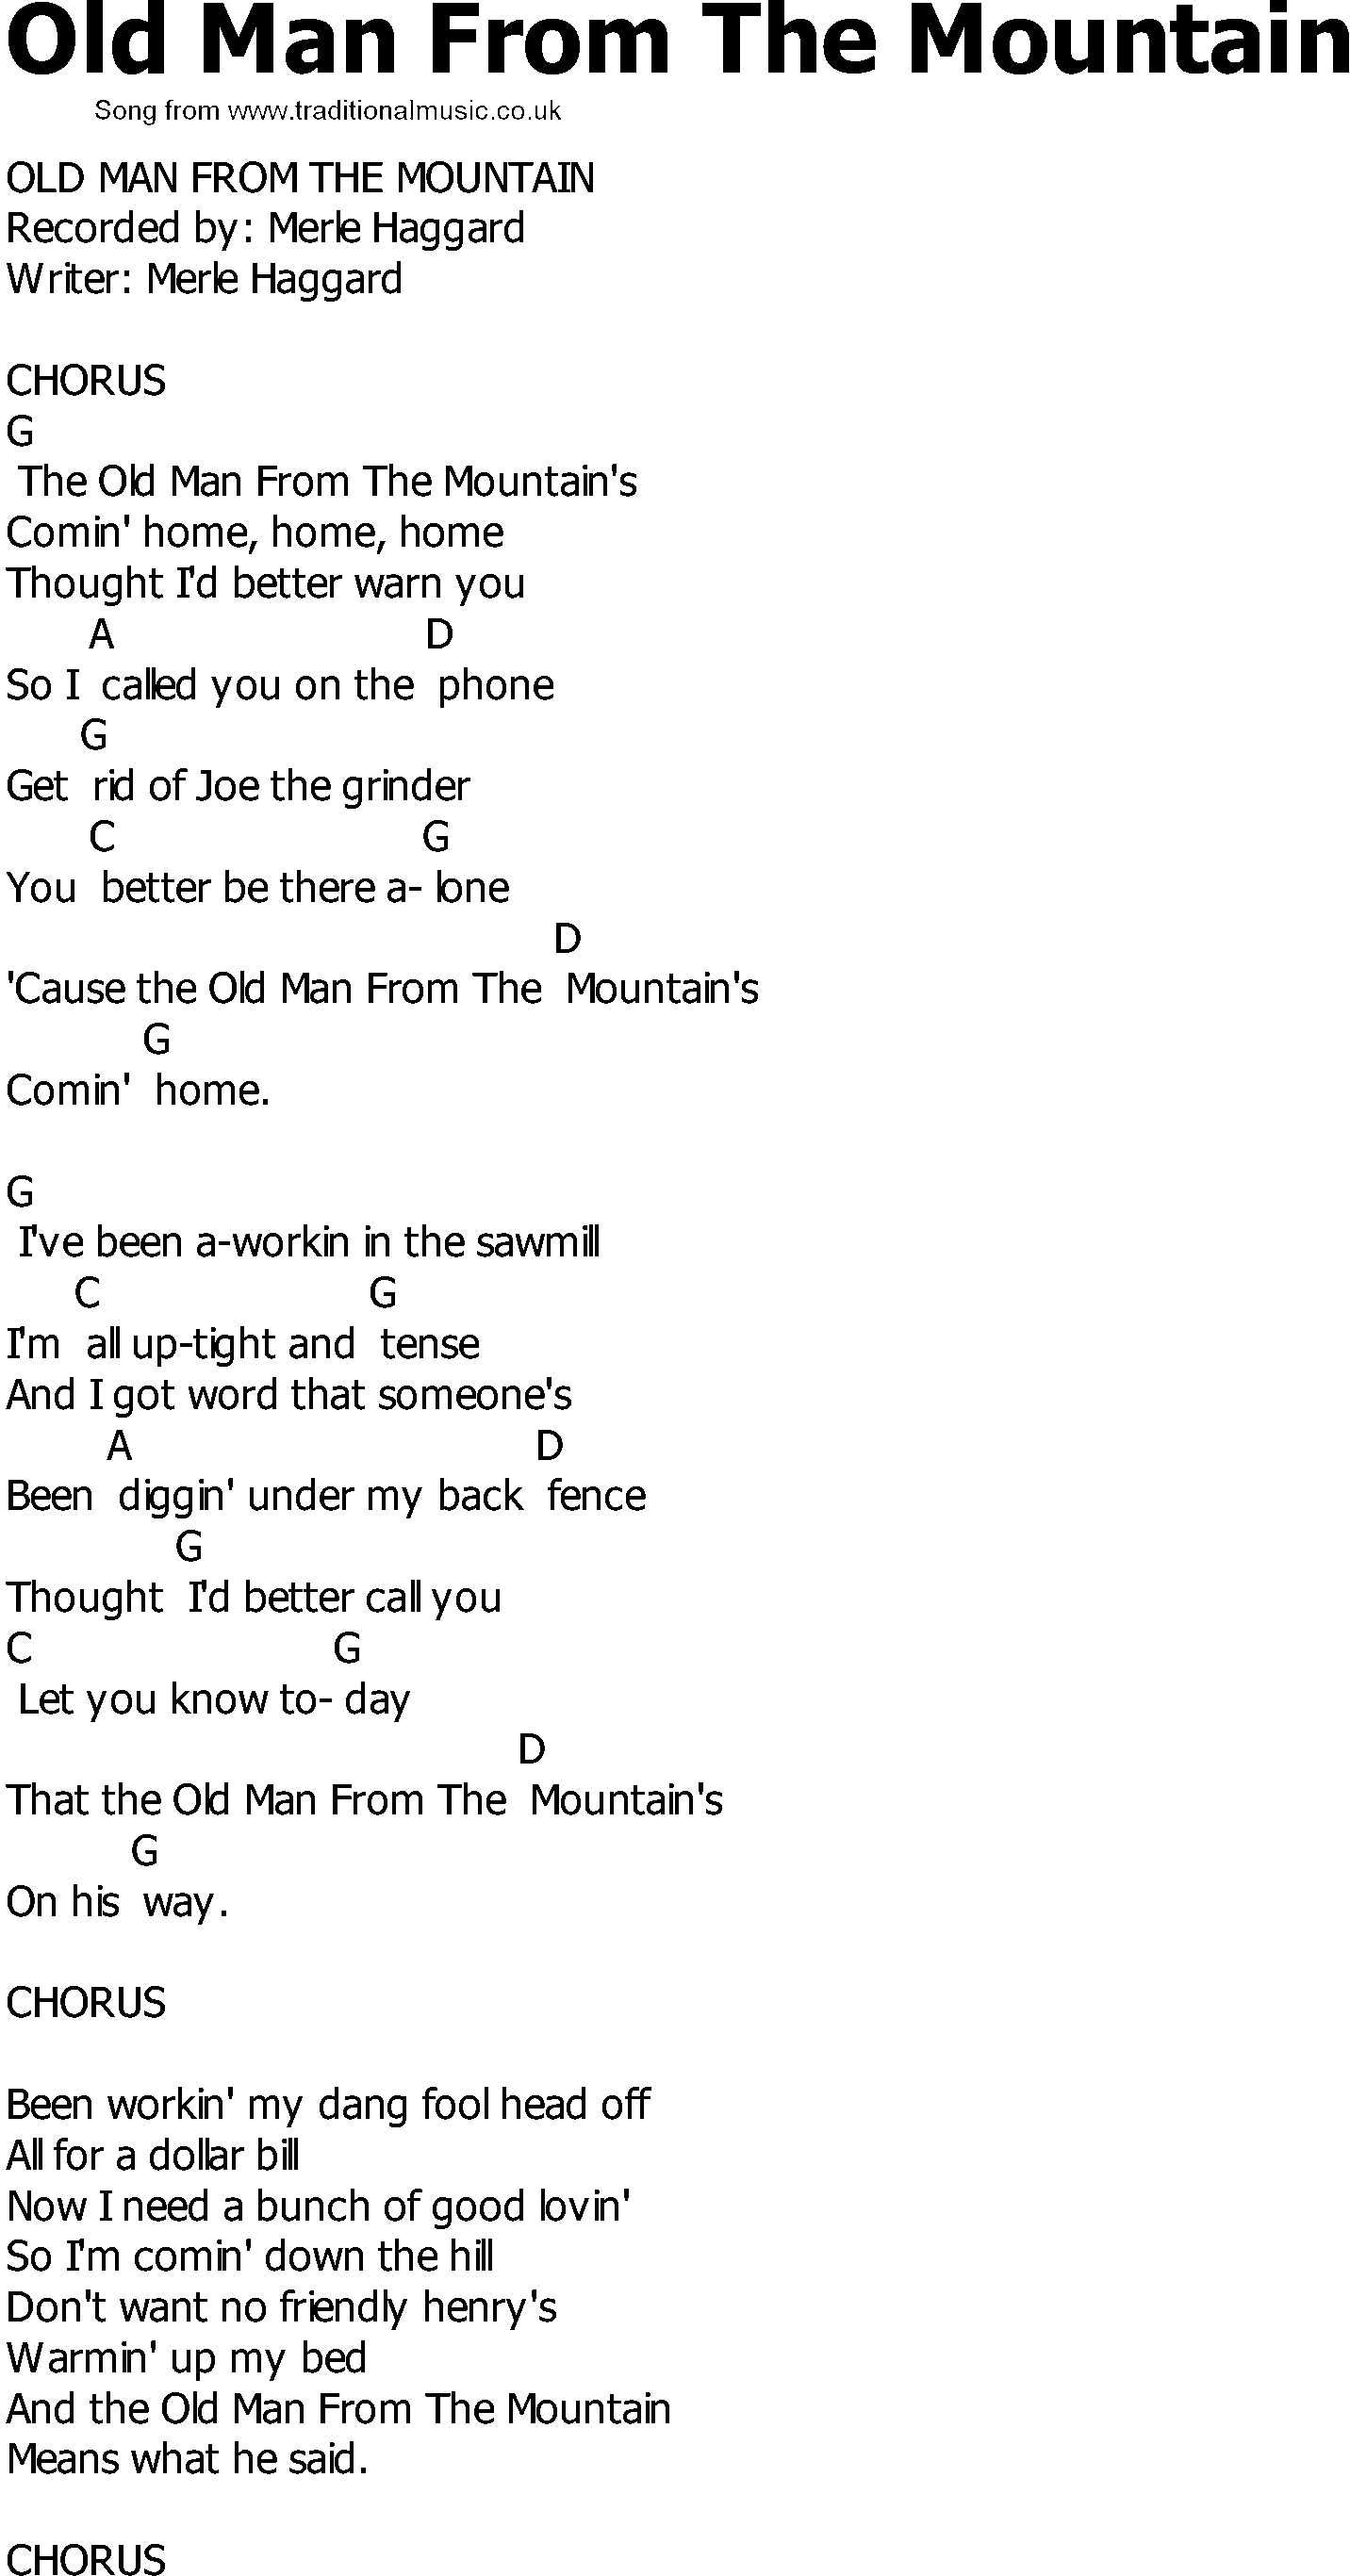 Old Man Chords Old Country Song Lyrics With Chords Old Man From The Mountain